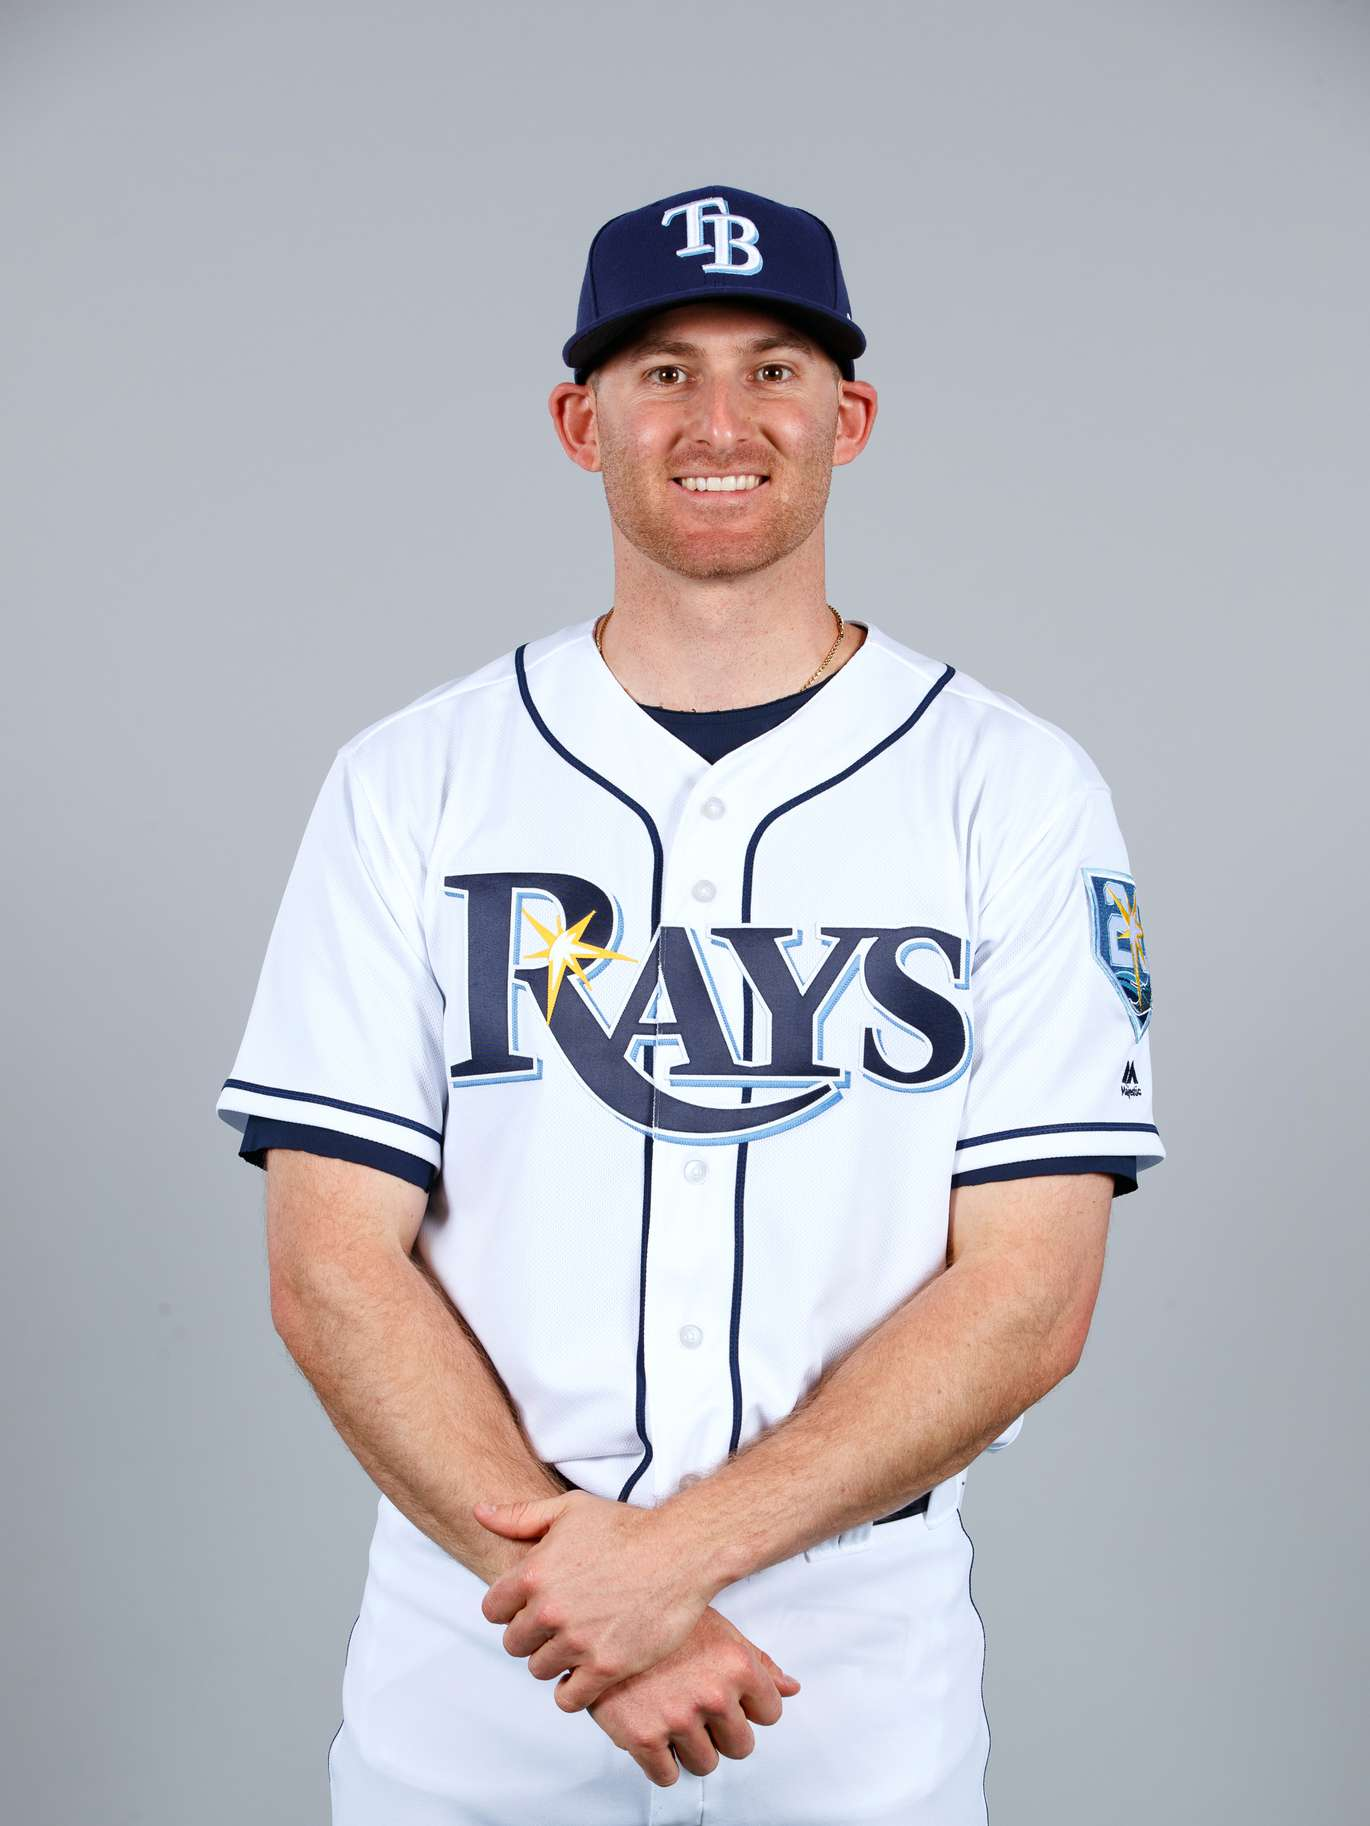 Has a lot to make up for after poor and injury plagued '17 season, and can either reward or embarrass Rays for sticking with him.